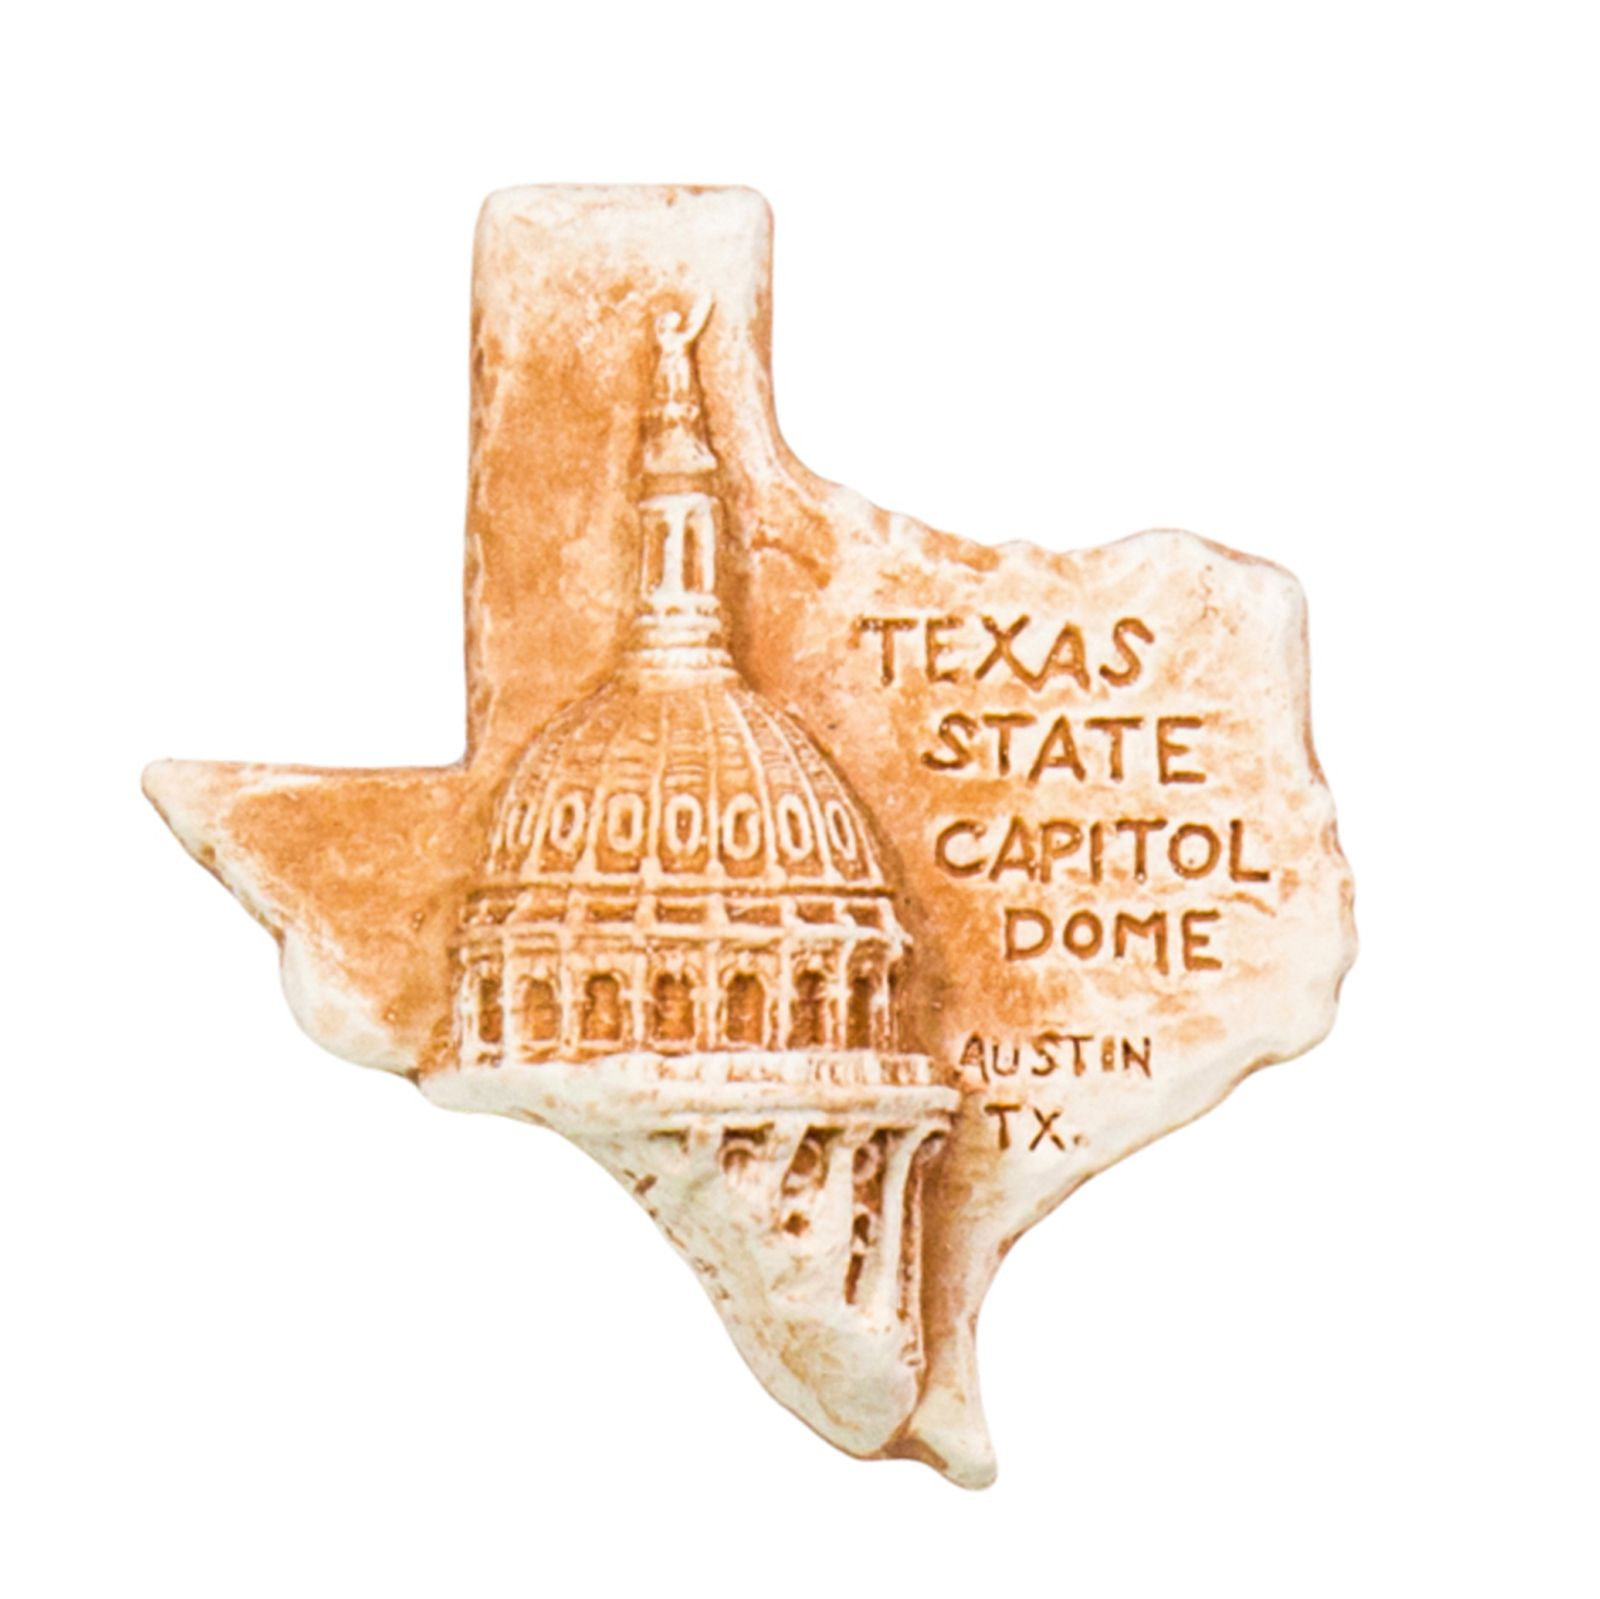 Texas Shaped Capitol Dome Magnet